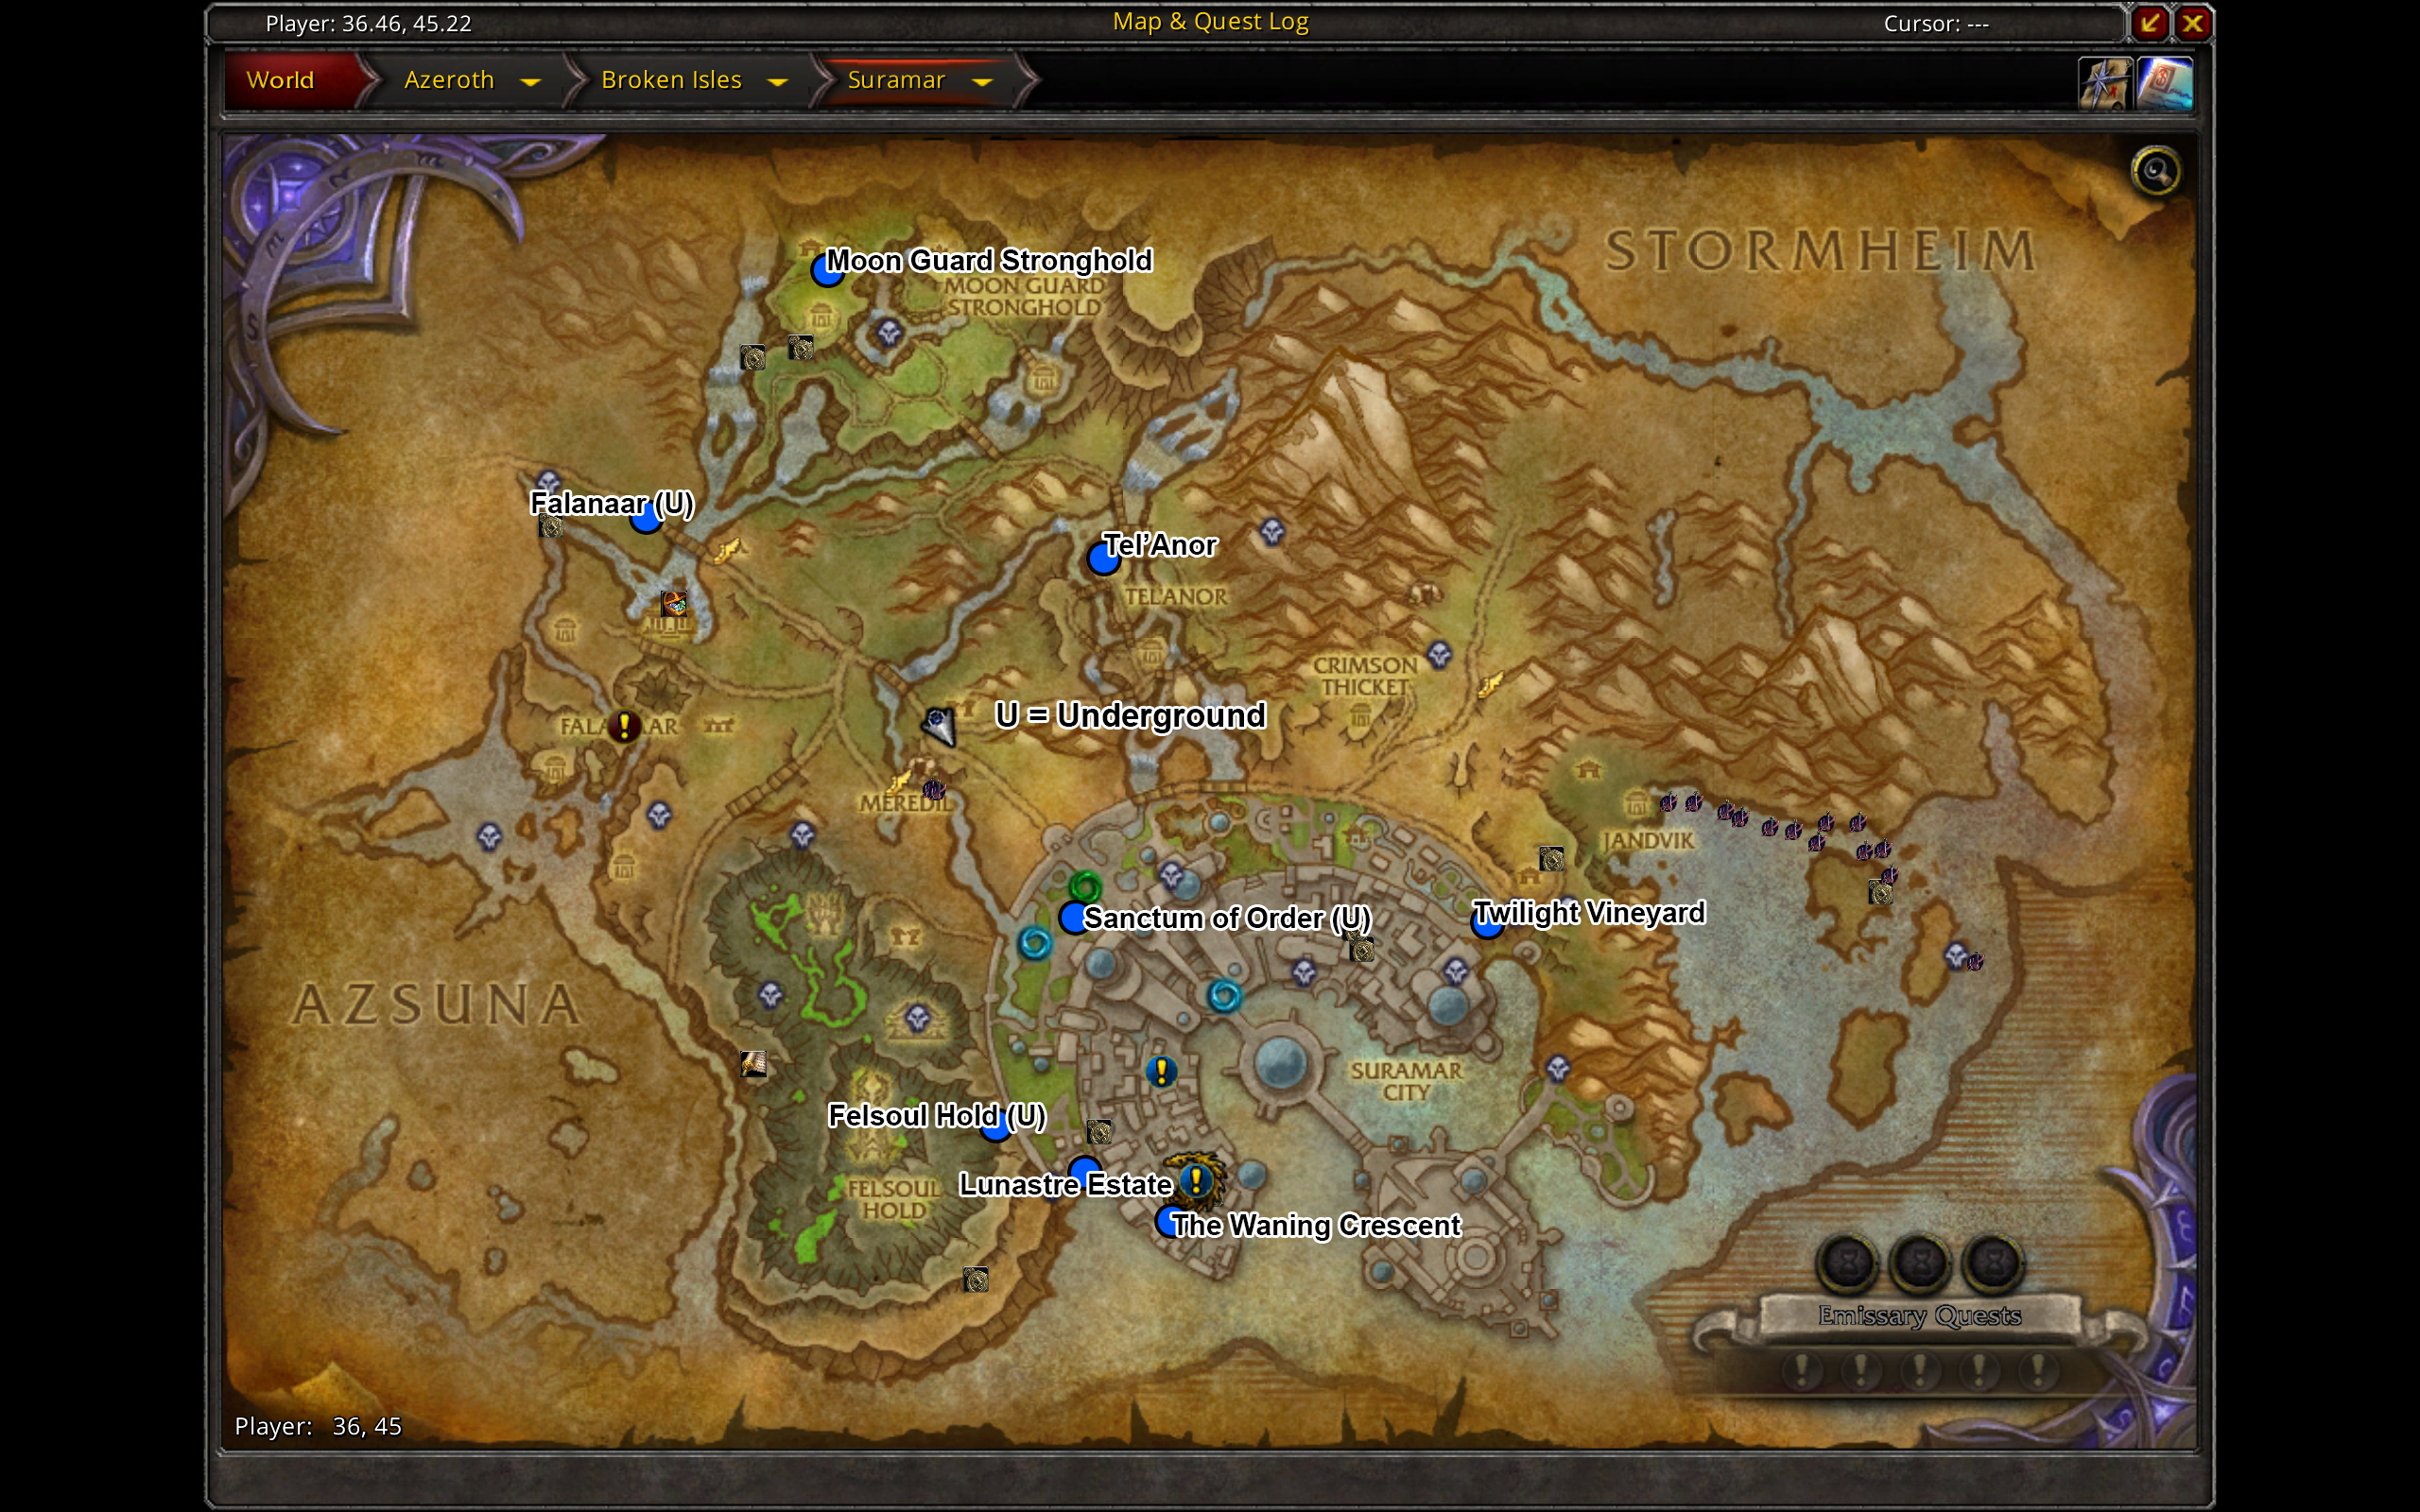 Complete Suramar Teleport Map Worldofwarcraft Blizzard Hearthstone Wow Warcraft Blizzardcs Gaming Map Environment Map World Of Warcraft